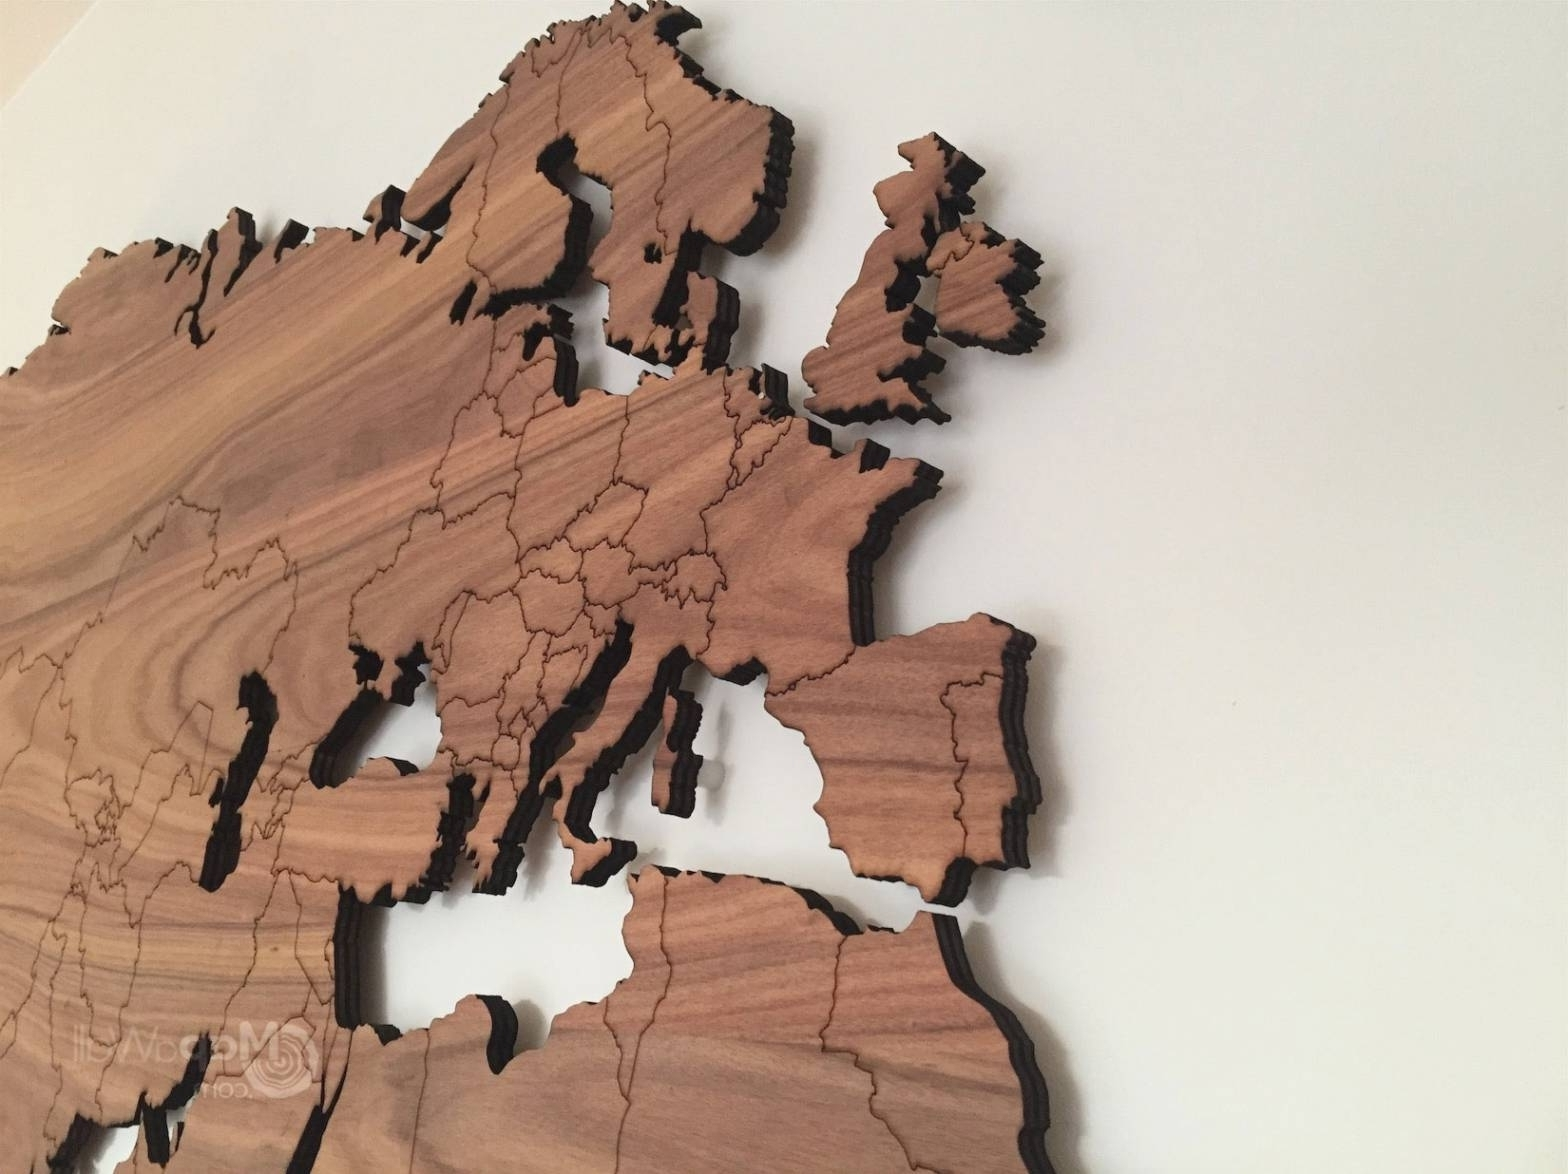 Well Known 20 Ideas Of Map World Wall Art And Wooden – Furlongs Regarding Wall Art Map Of World (Gallery 16 of 20)